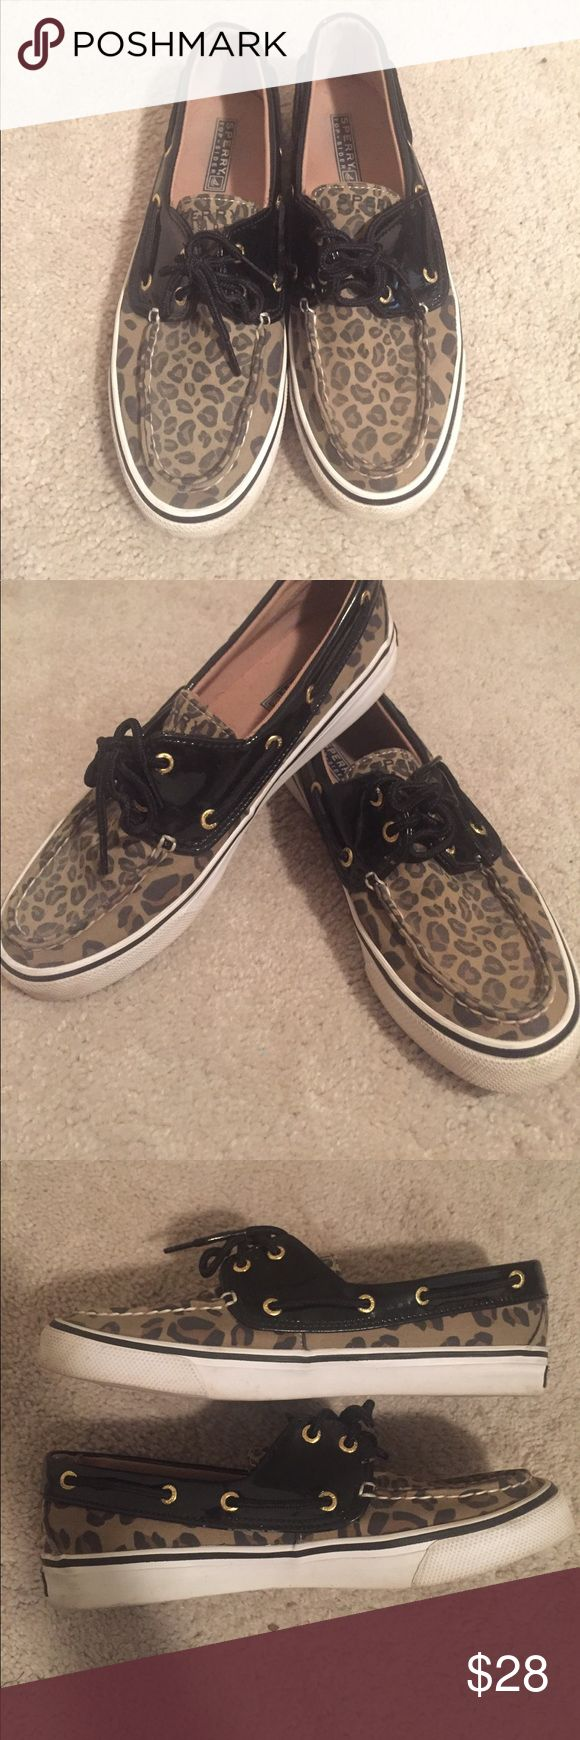 Leopard sperrys Leopard sperrys. Used but in good condition. Black patent detail Sperry Top-Sider Shoes Flats & Loafers